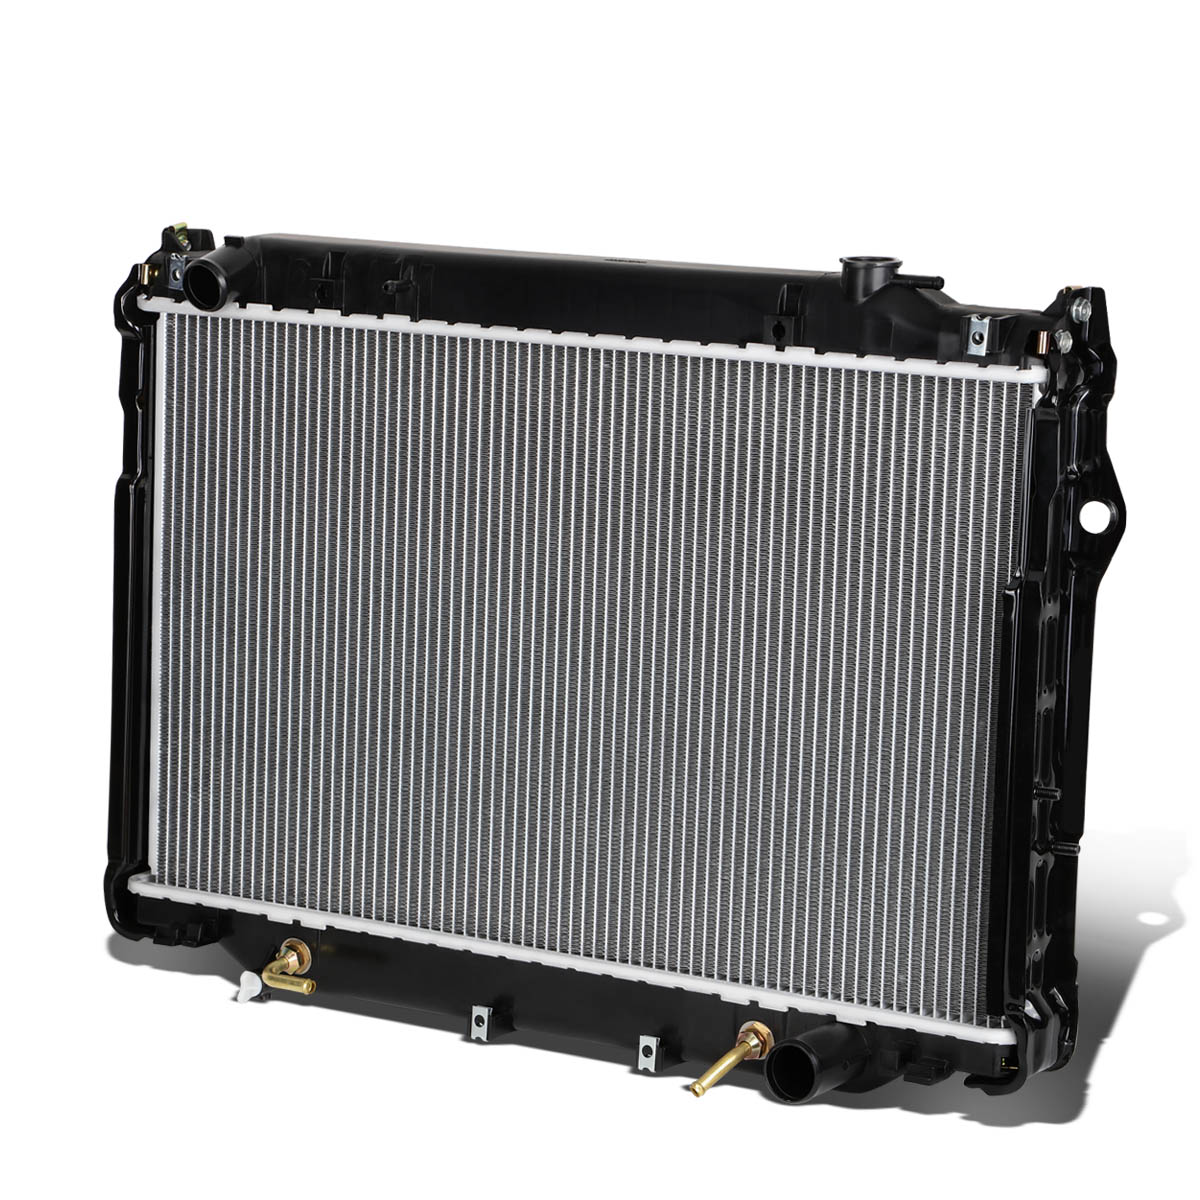 Aluminum Cooling Radiator OE Replacement for 93-97 LX450//Land Cruiser dpi-1917